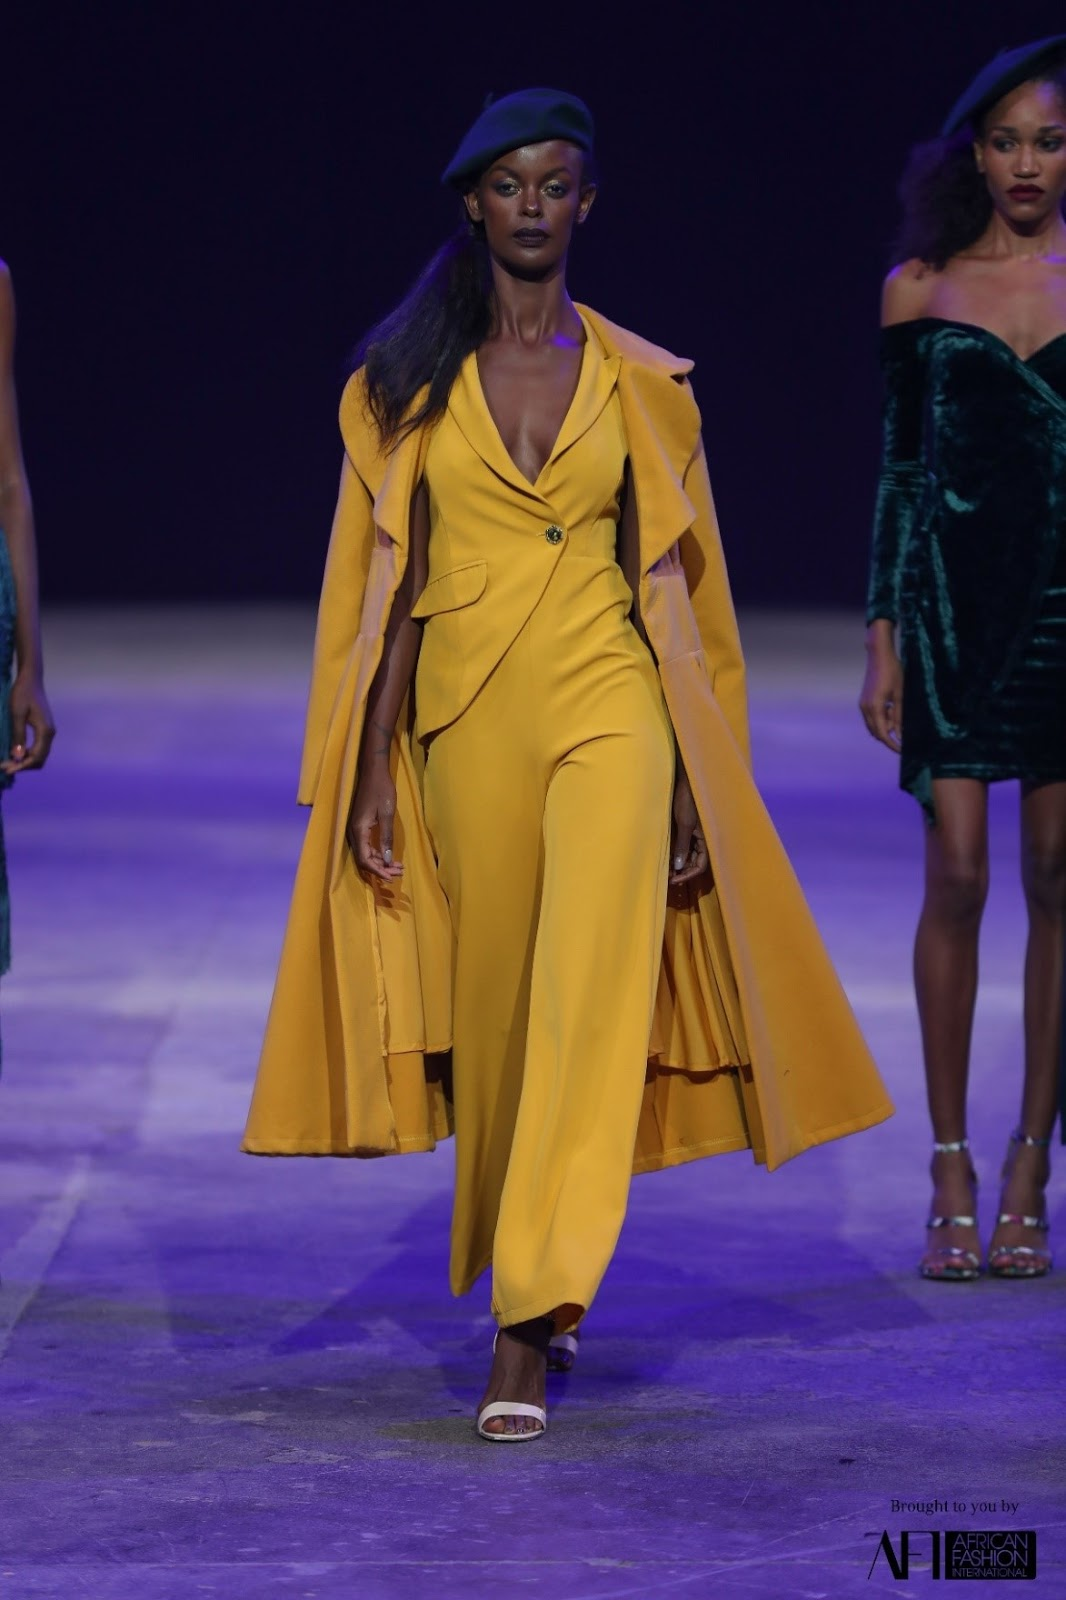 Best Looks For Working Women From AFI Cape Town Fashion Week